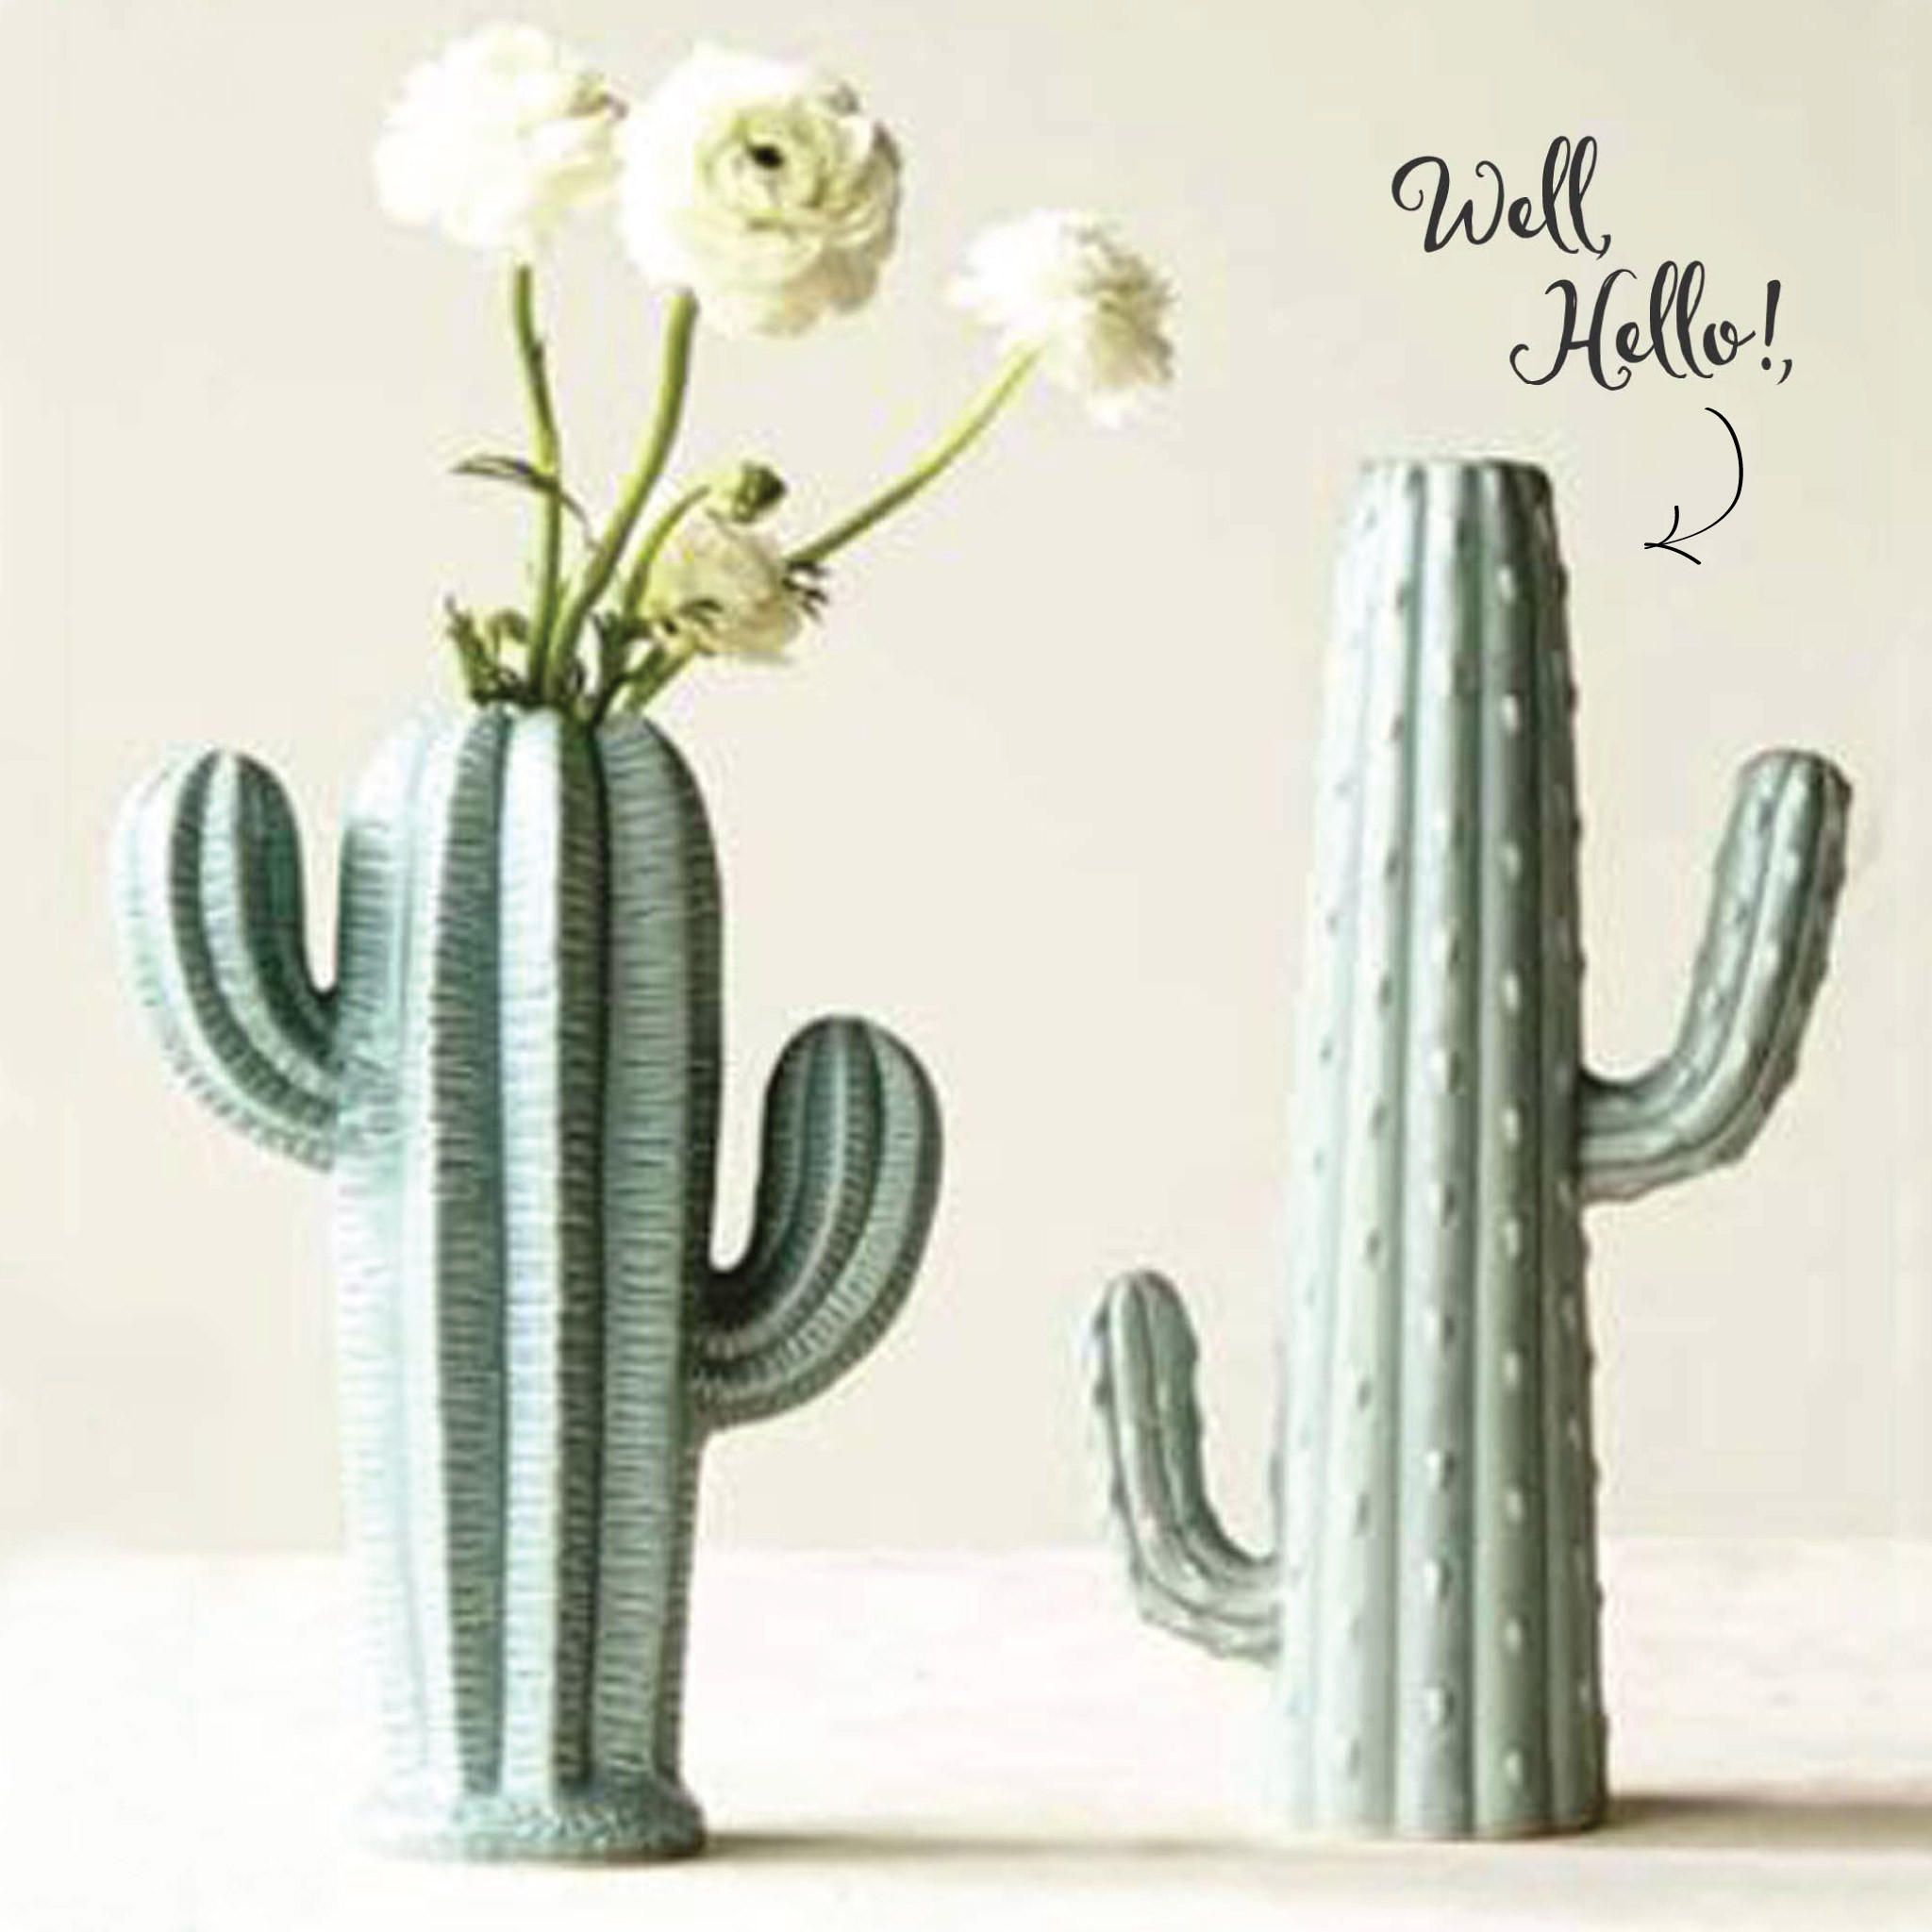 Stoneware Cactus Vase 2 from Spool No.72. Saved to Things